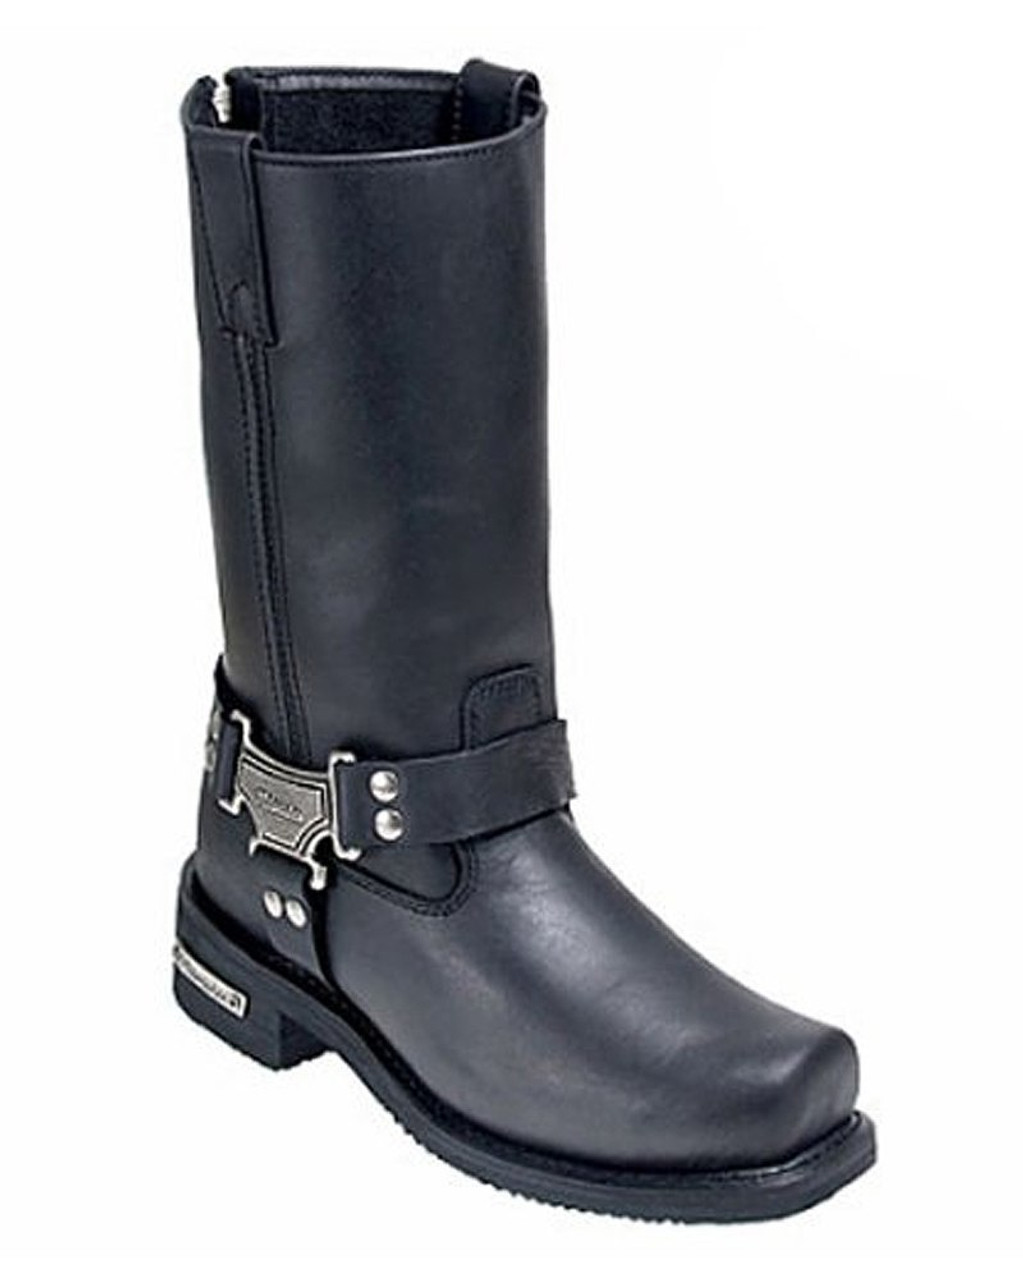 Black, Size 9D Milwaukee Motorcycle Clothing Company Classic Harness Leather Mens Motorcycle Boots